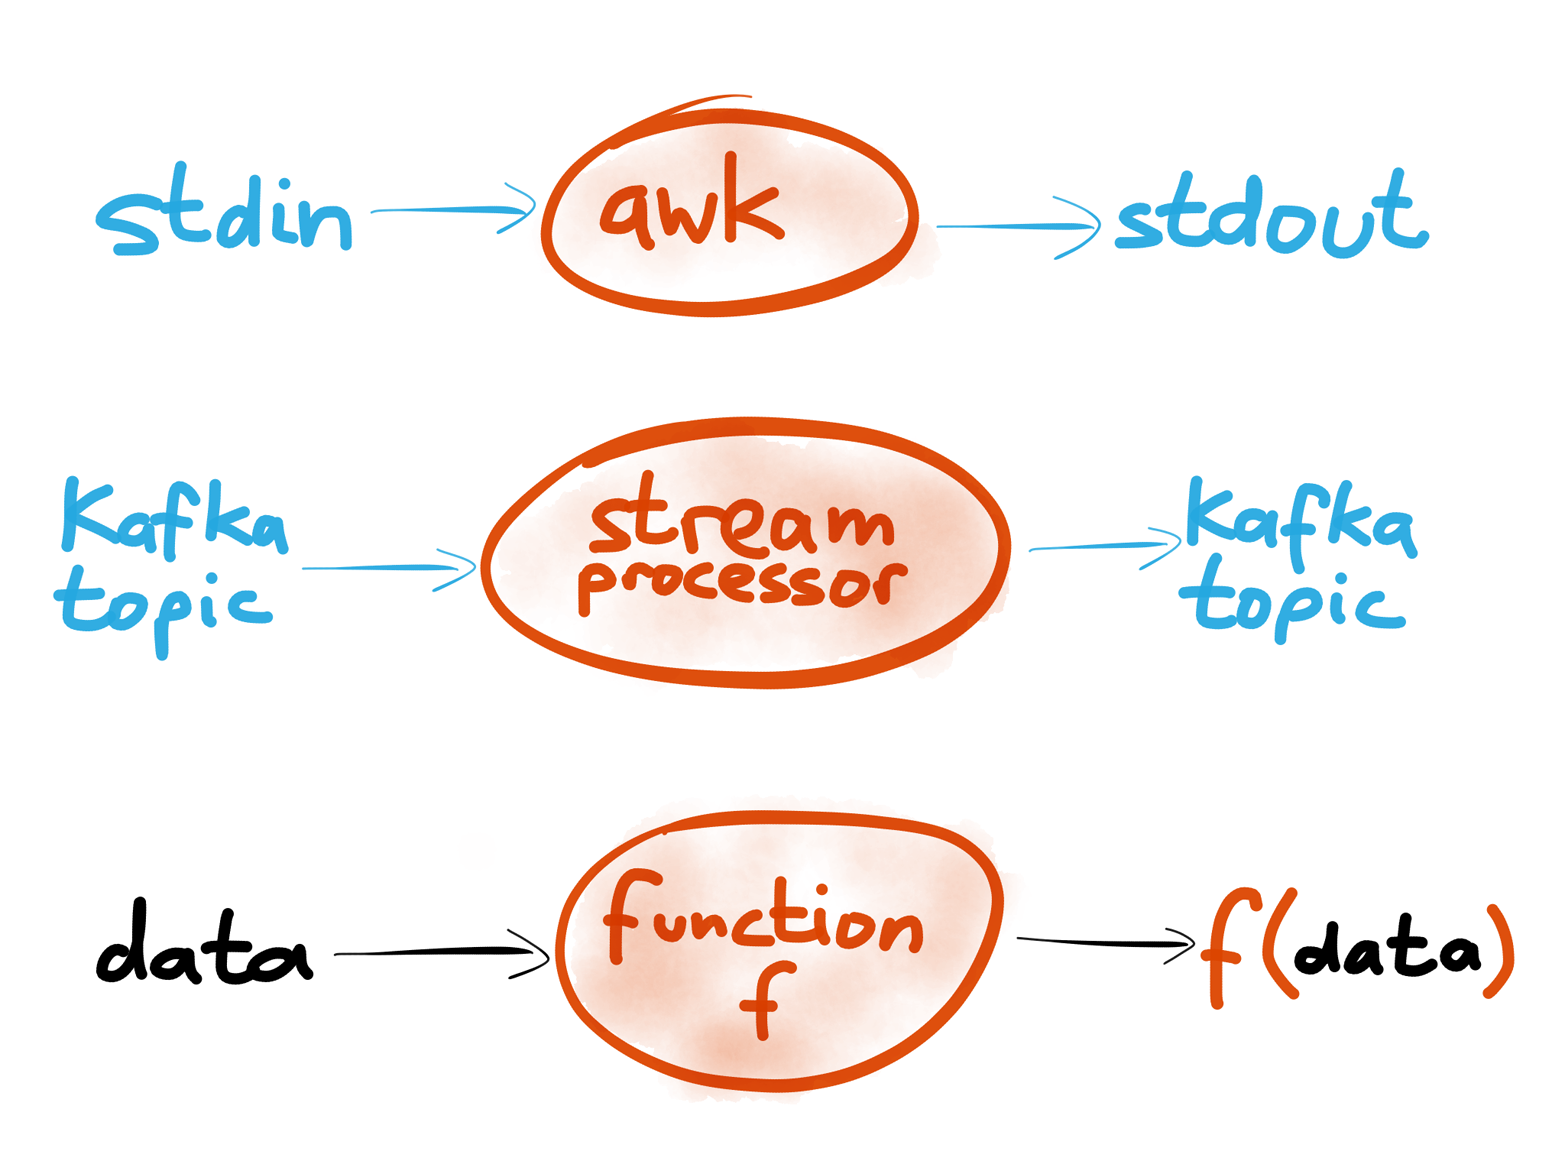 Unix tools, stream processors and functional programming share a common trait: inputs are immutable, processing has no global side-effects, and the output is explicit.